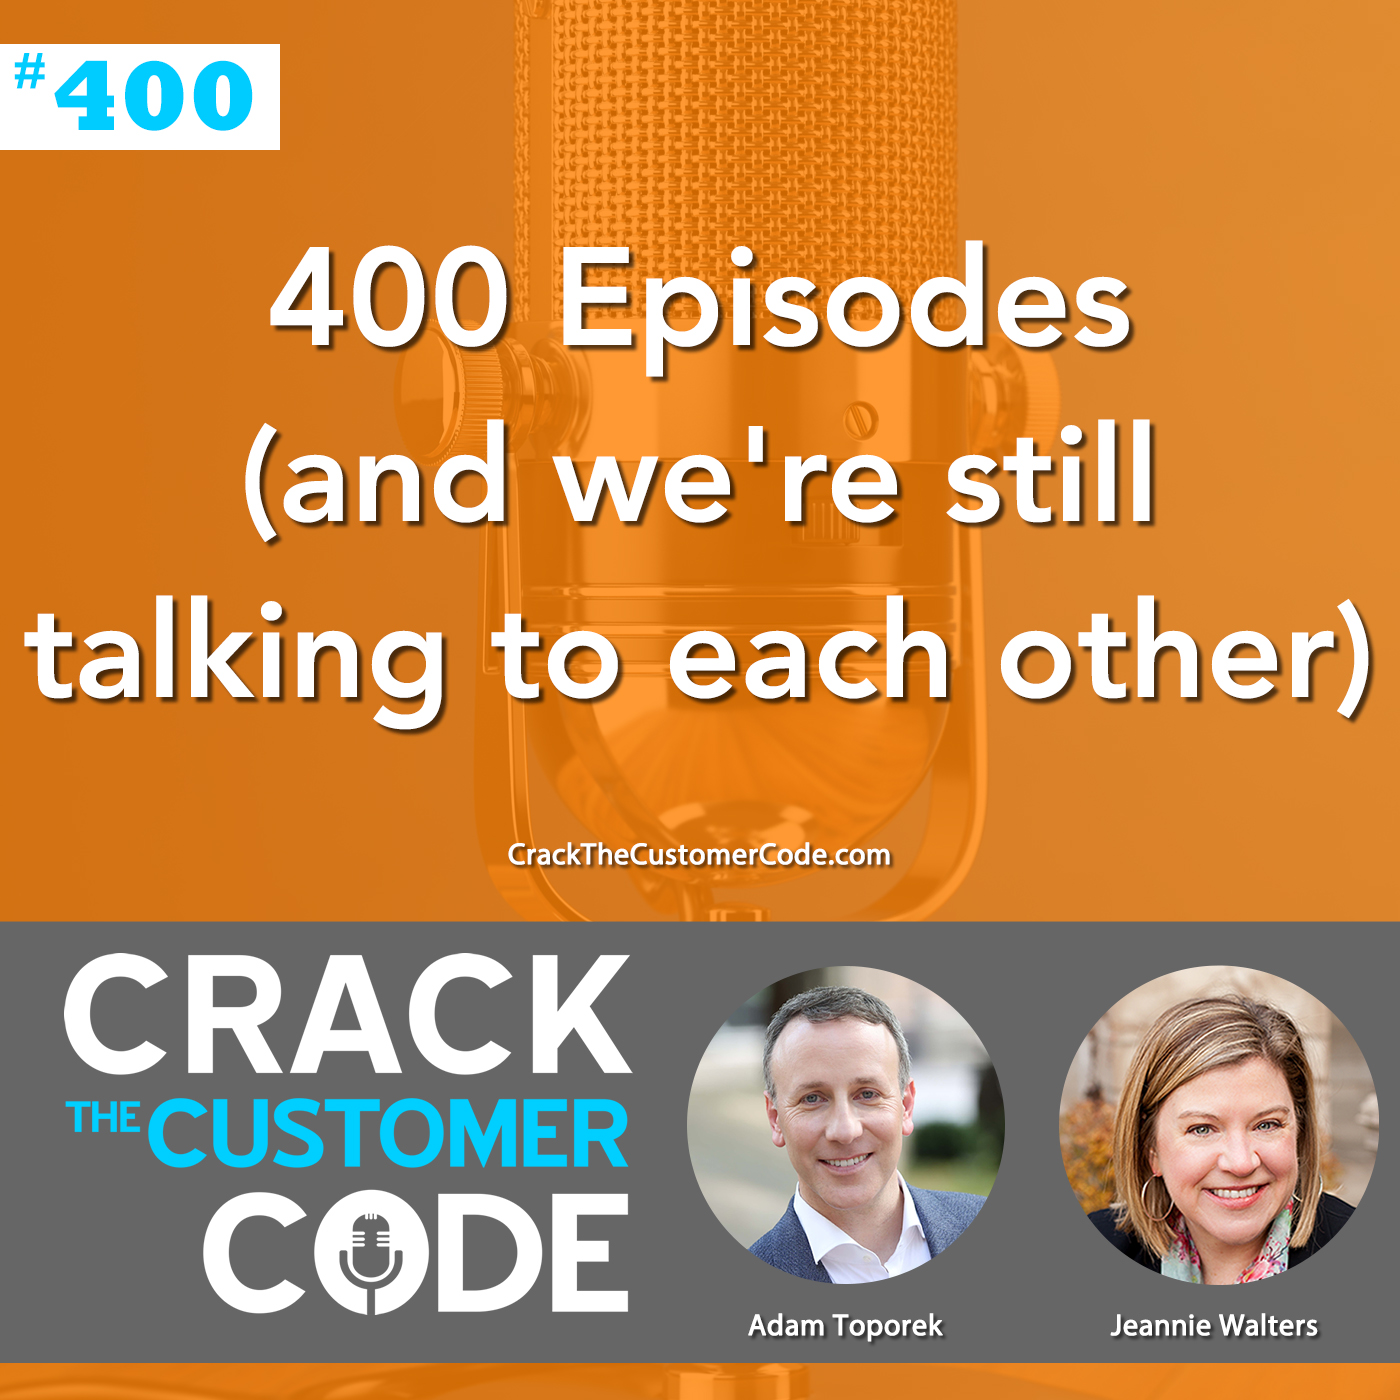 400 Episodes (and we're still talking to each other)